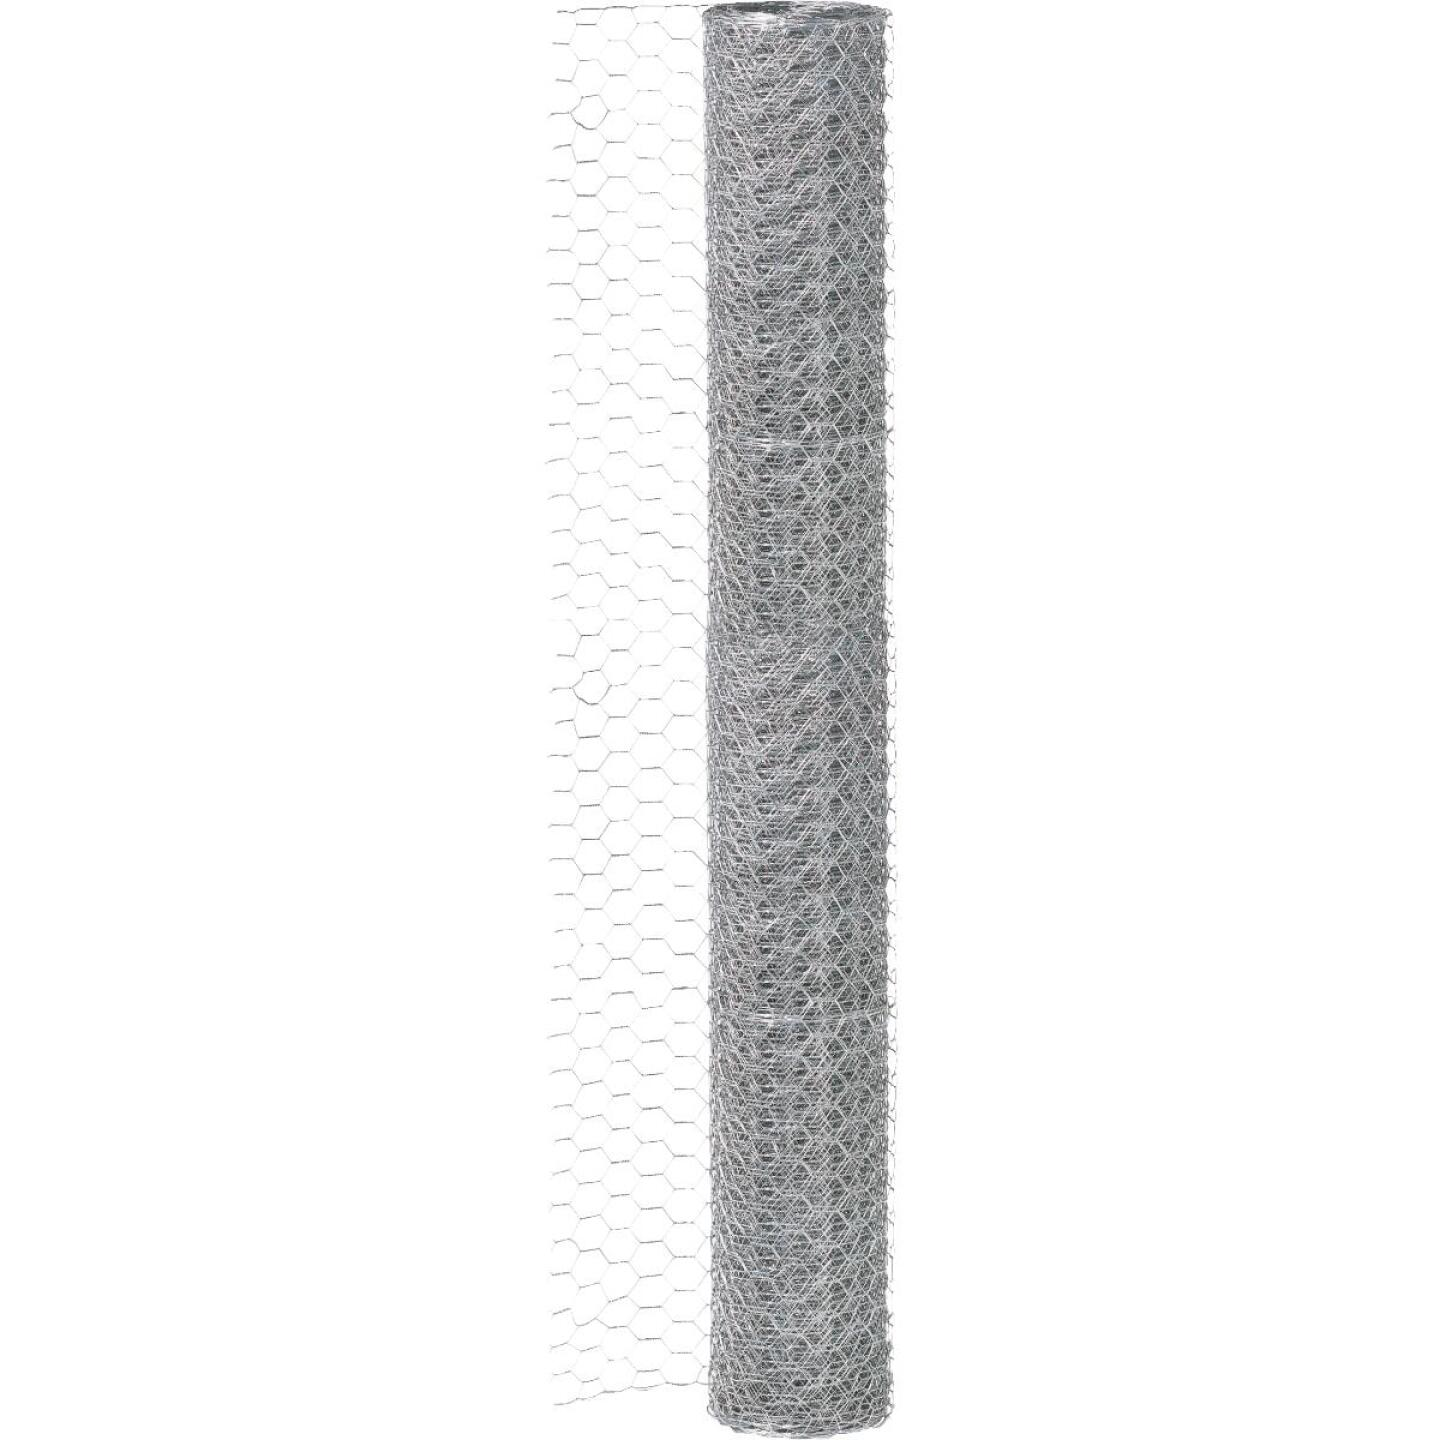 1/2 In. x 24 In. H. x 25 Ft. L. Hexagonal Wire Poultry Netting Image 2